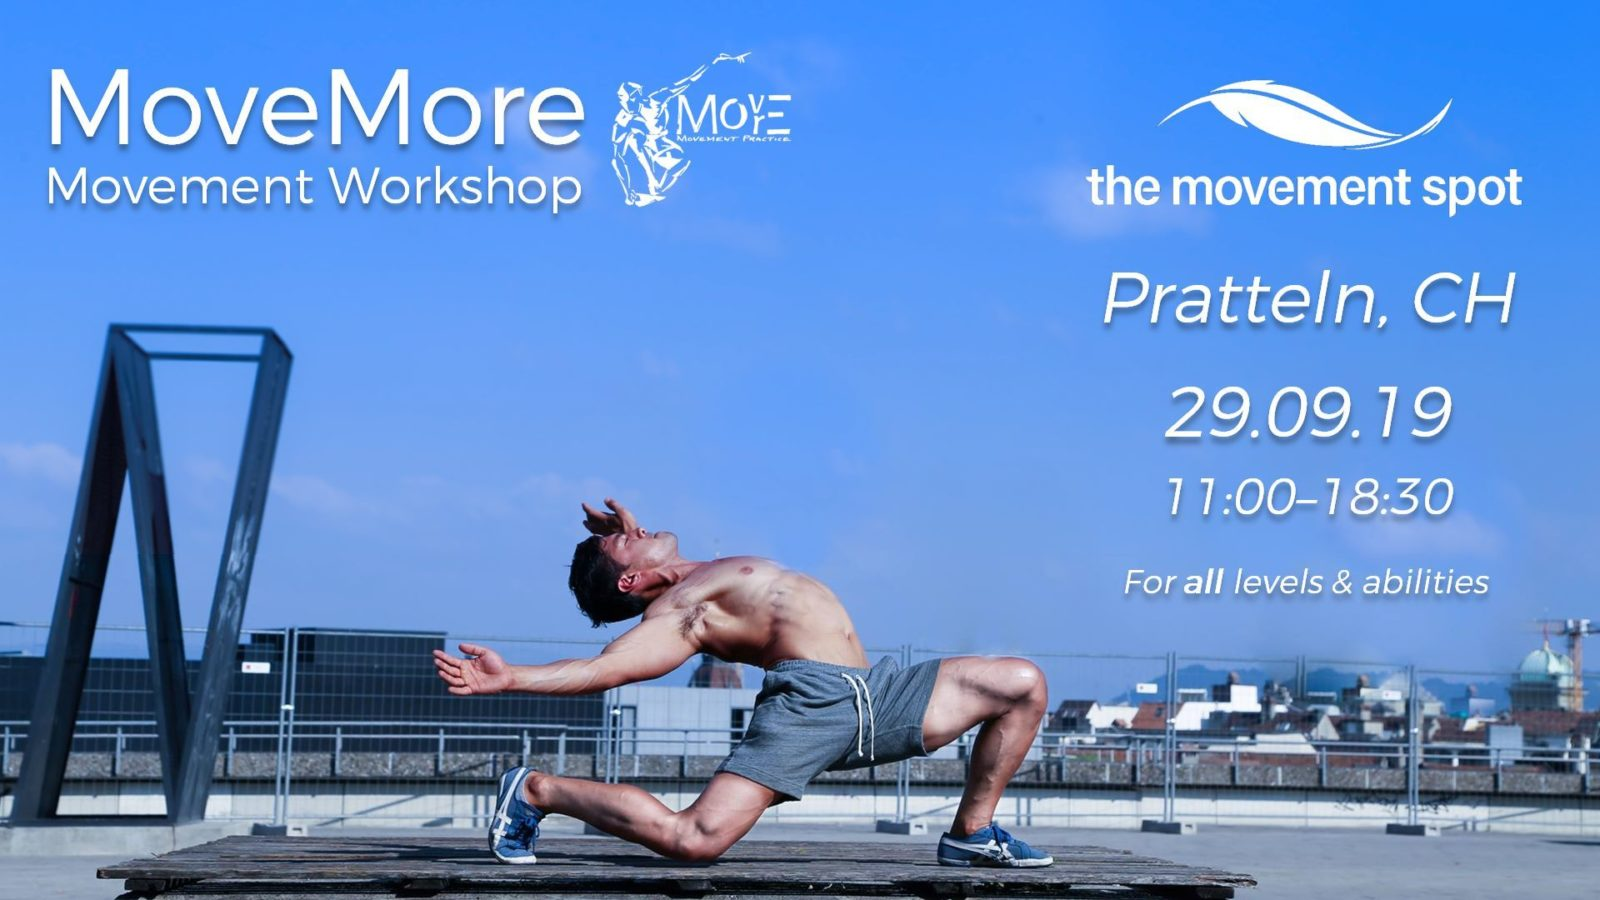 Move More Workshop themovementspot